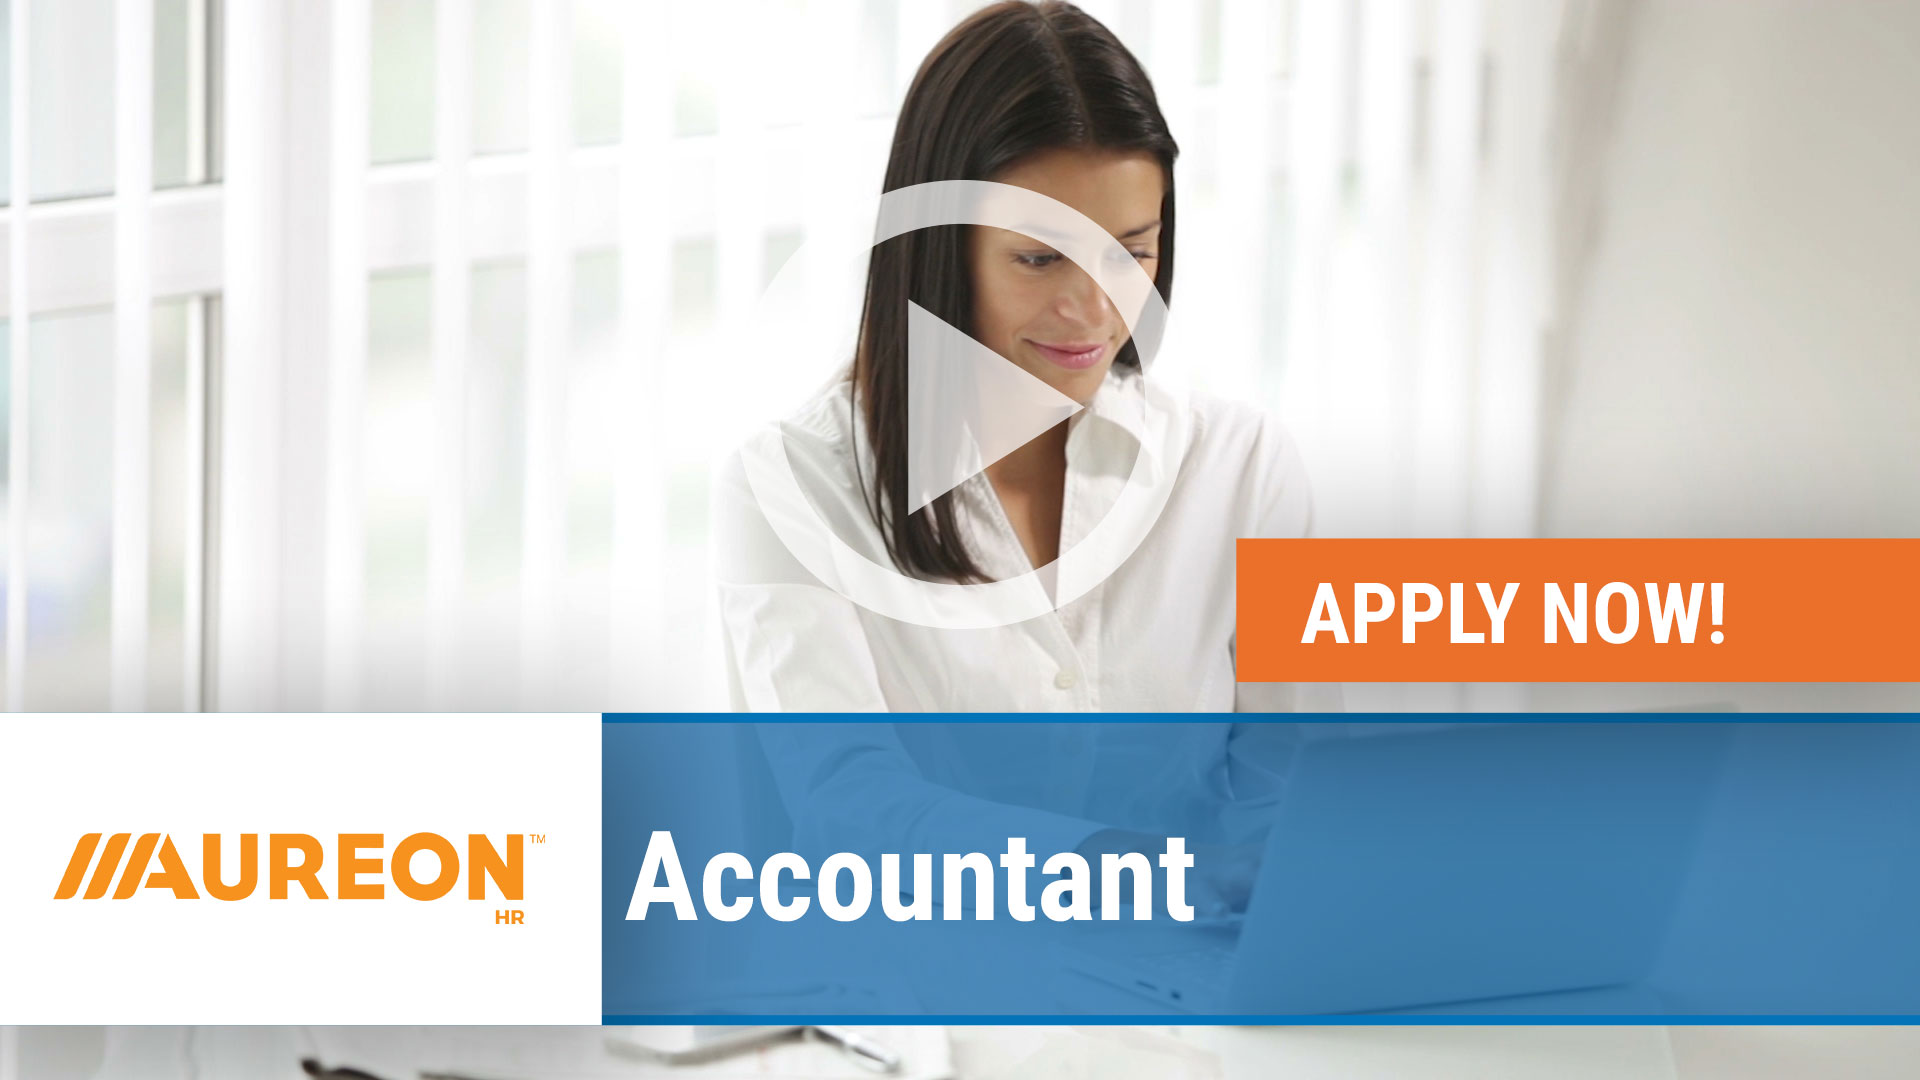 Watch our careers video for available job opening Accountant in Austin, TX